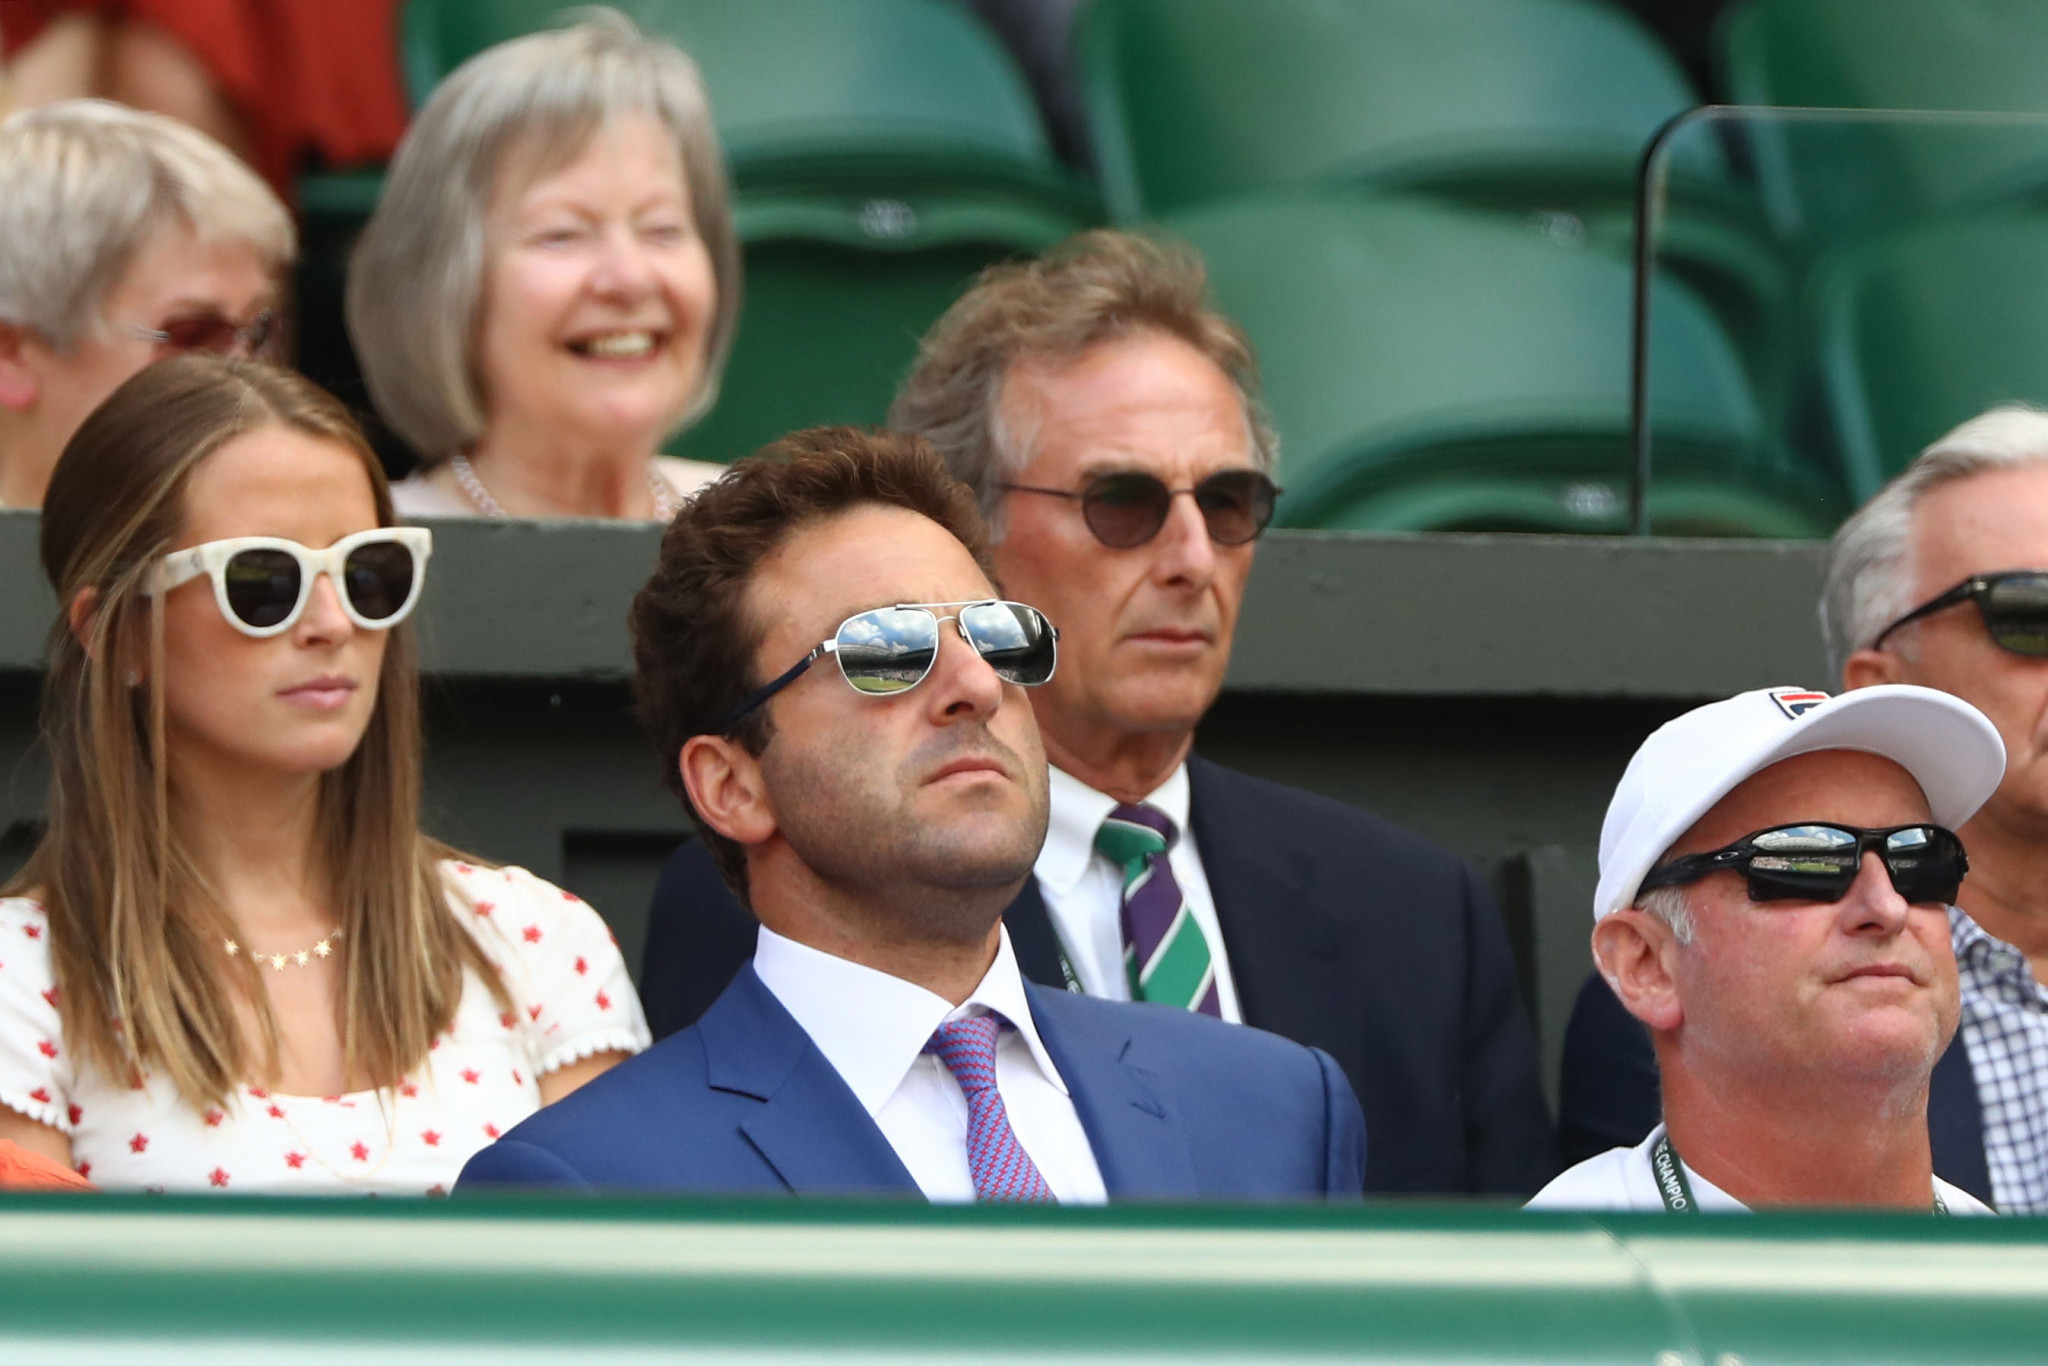 Gimelstob resigns from ATP Board following sentencing over assault